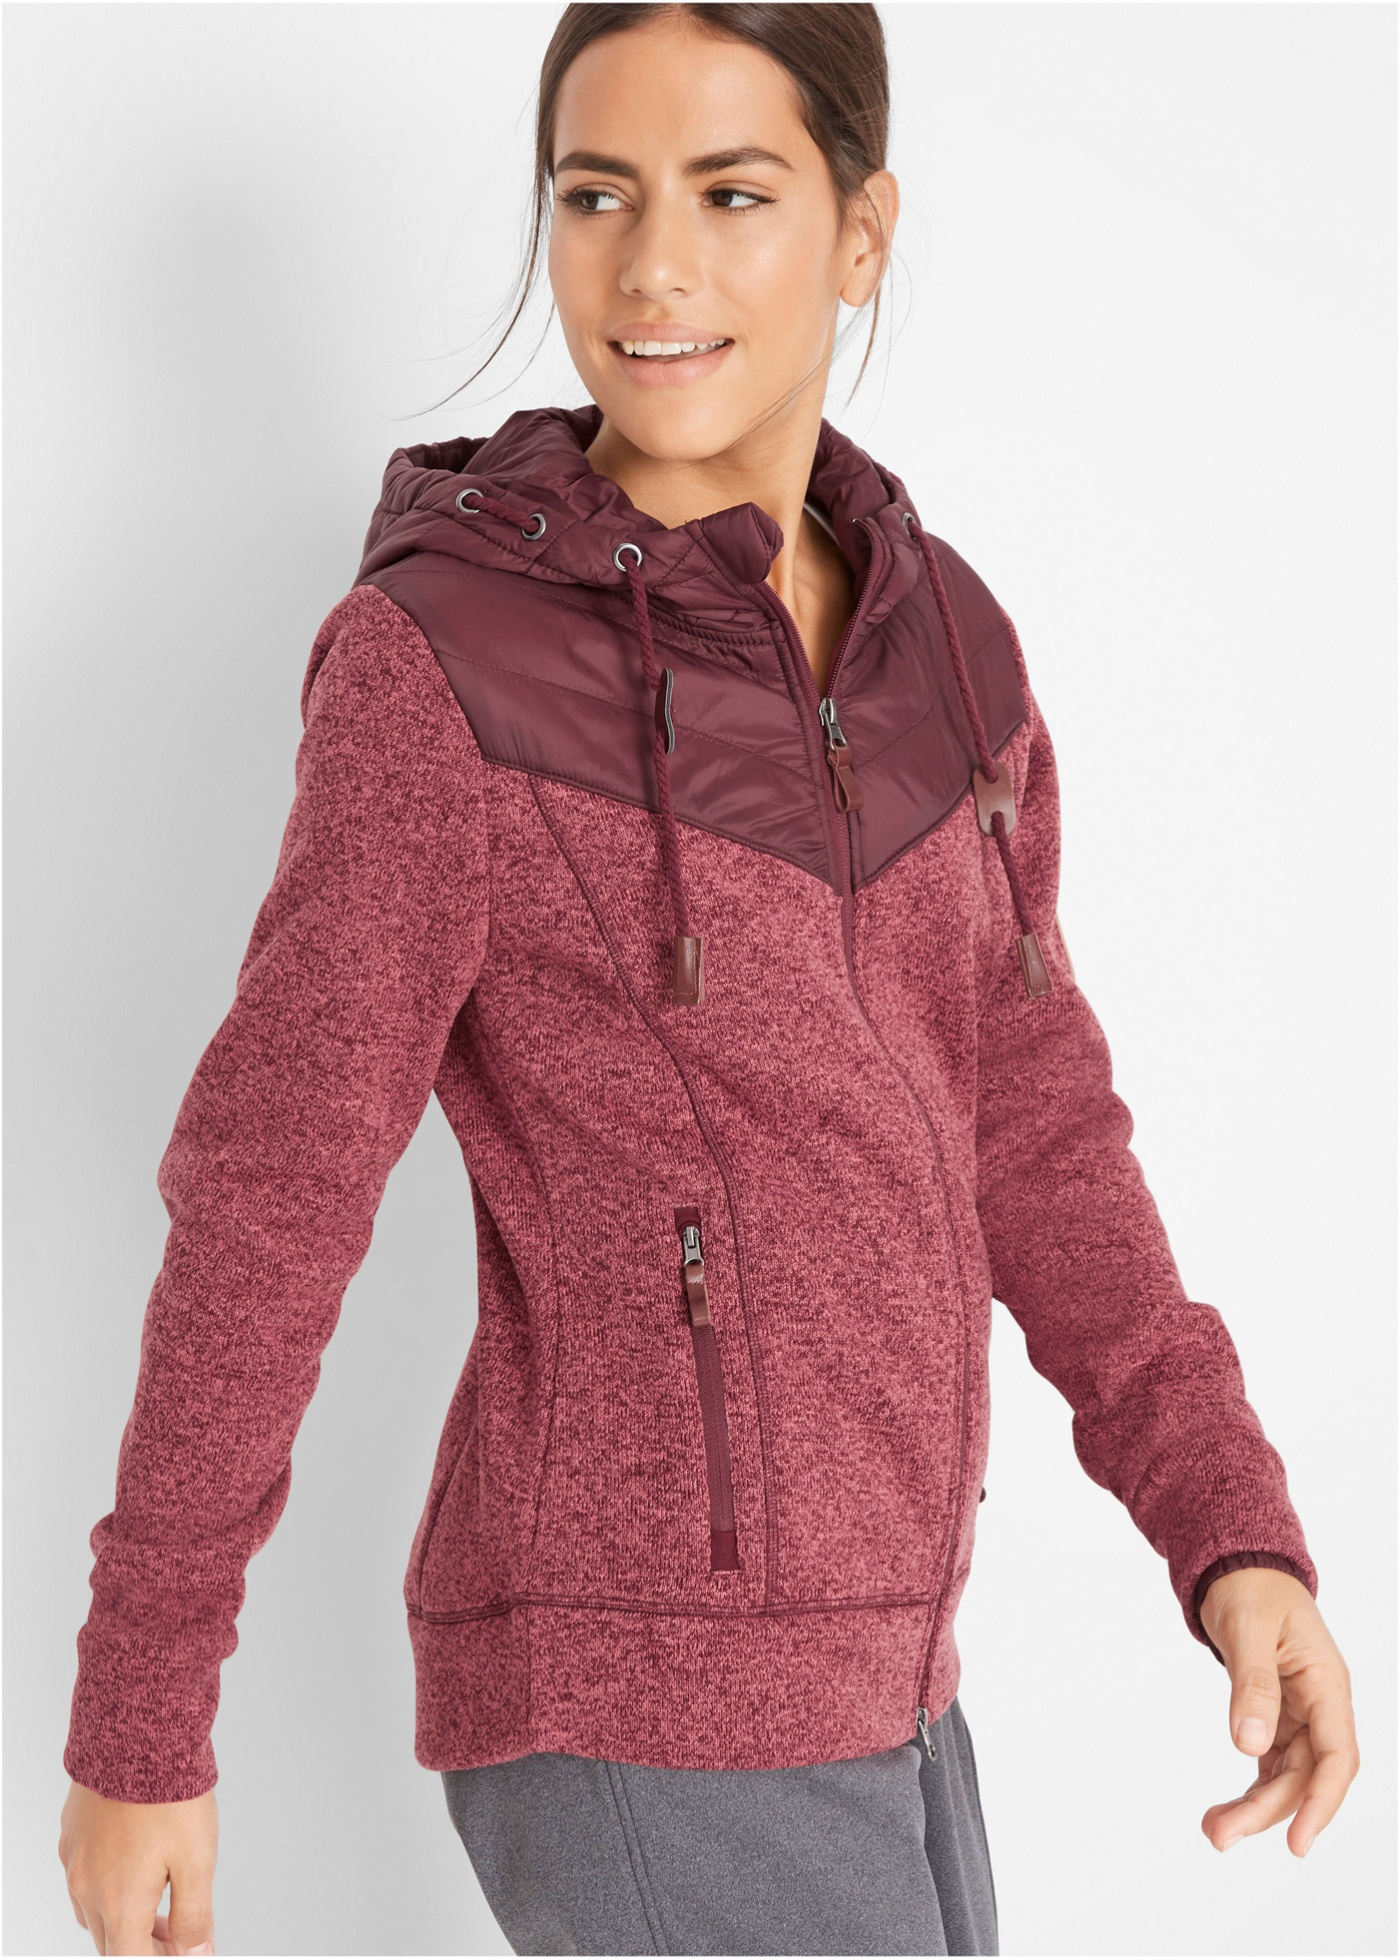 Bonprix Fleece vest